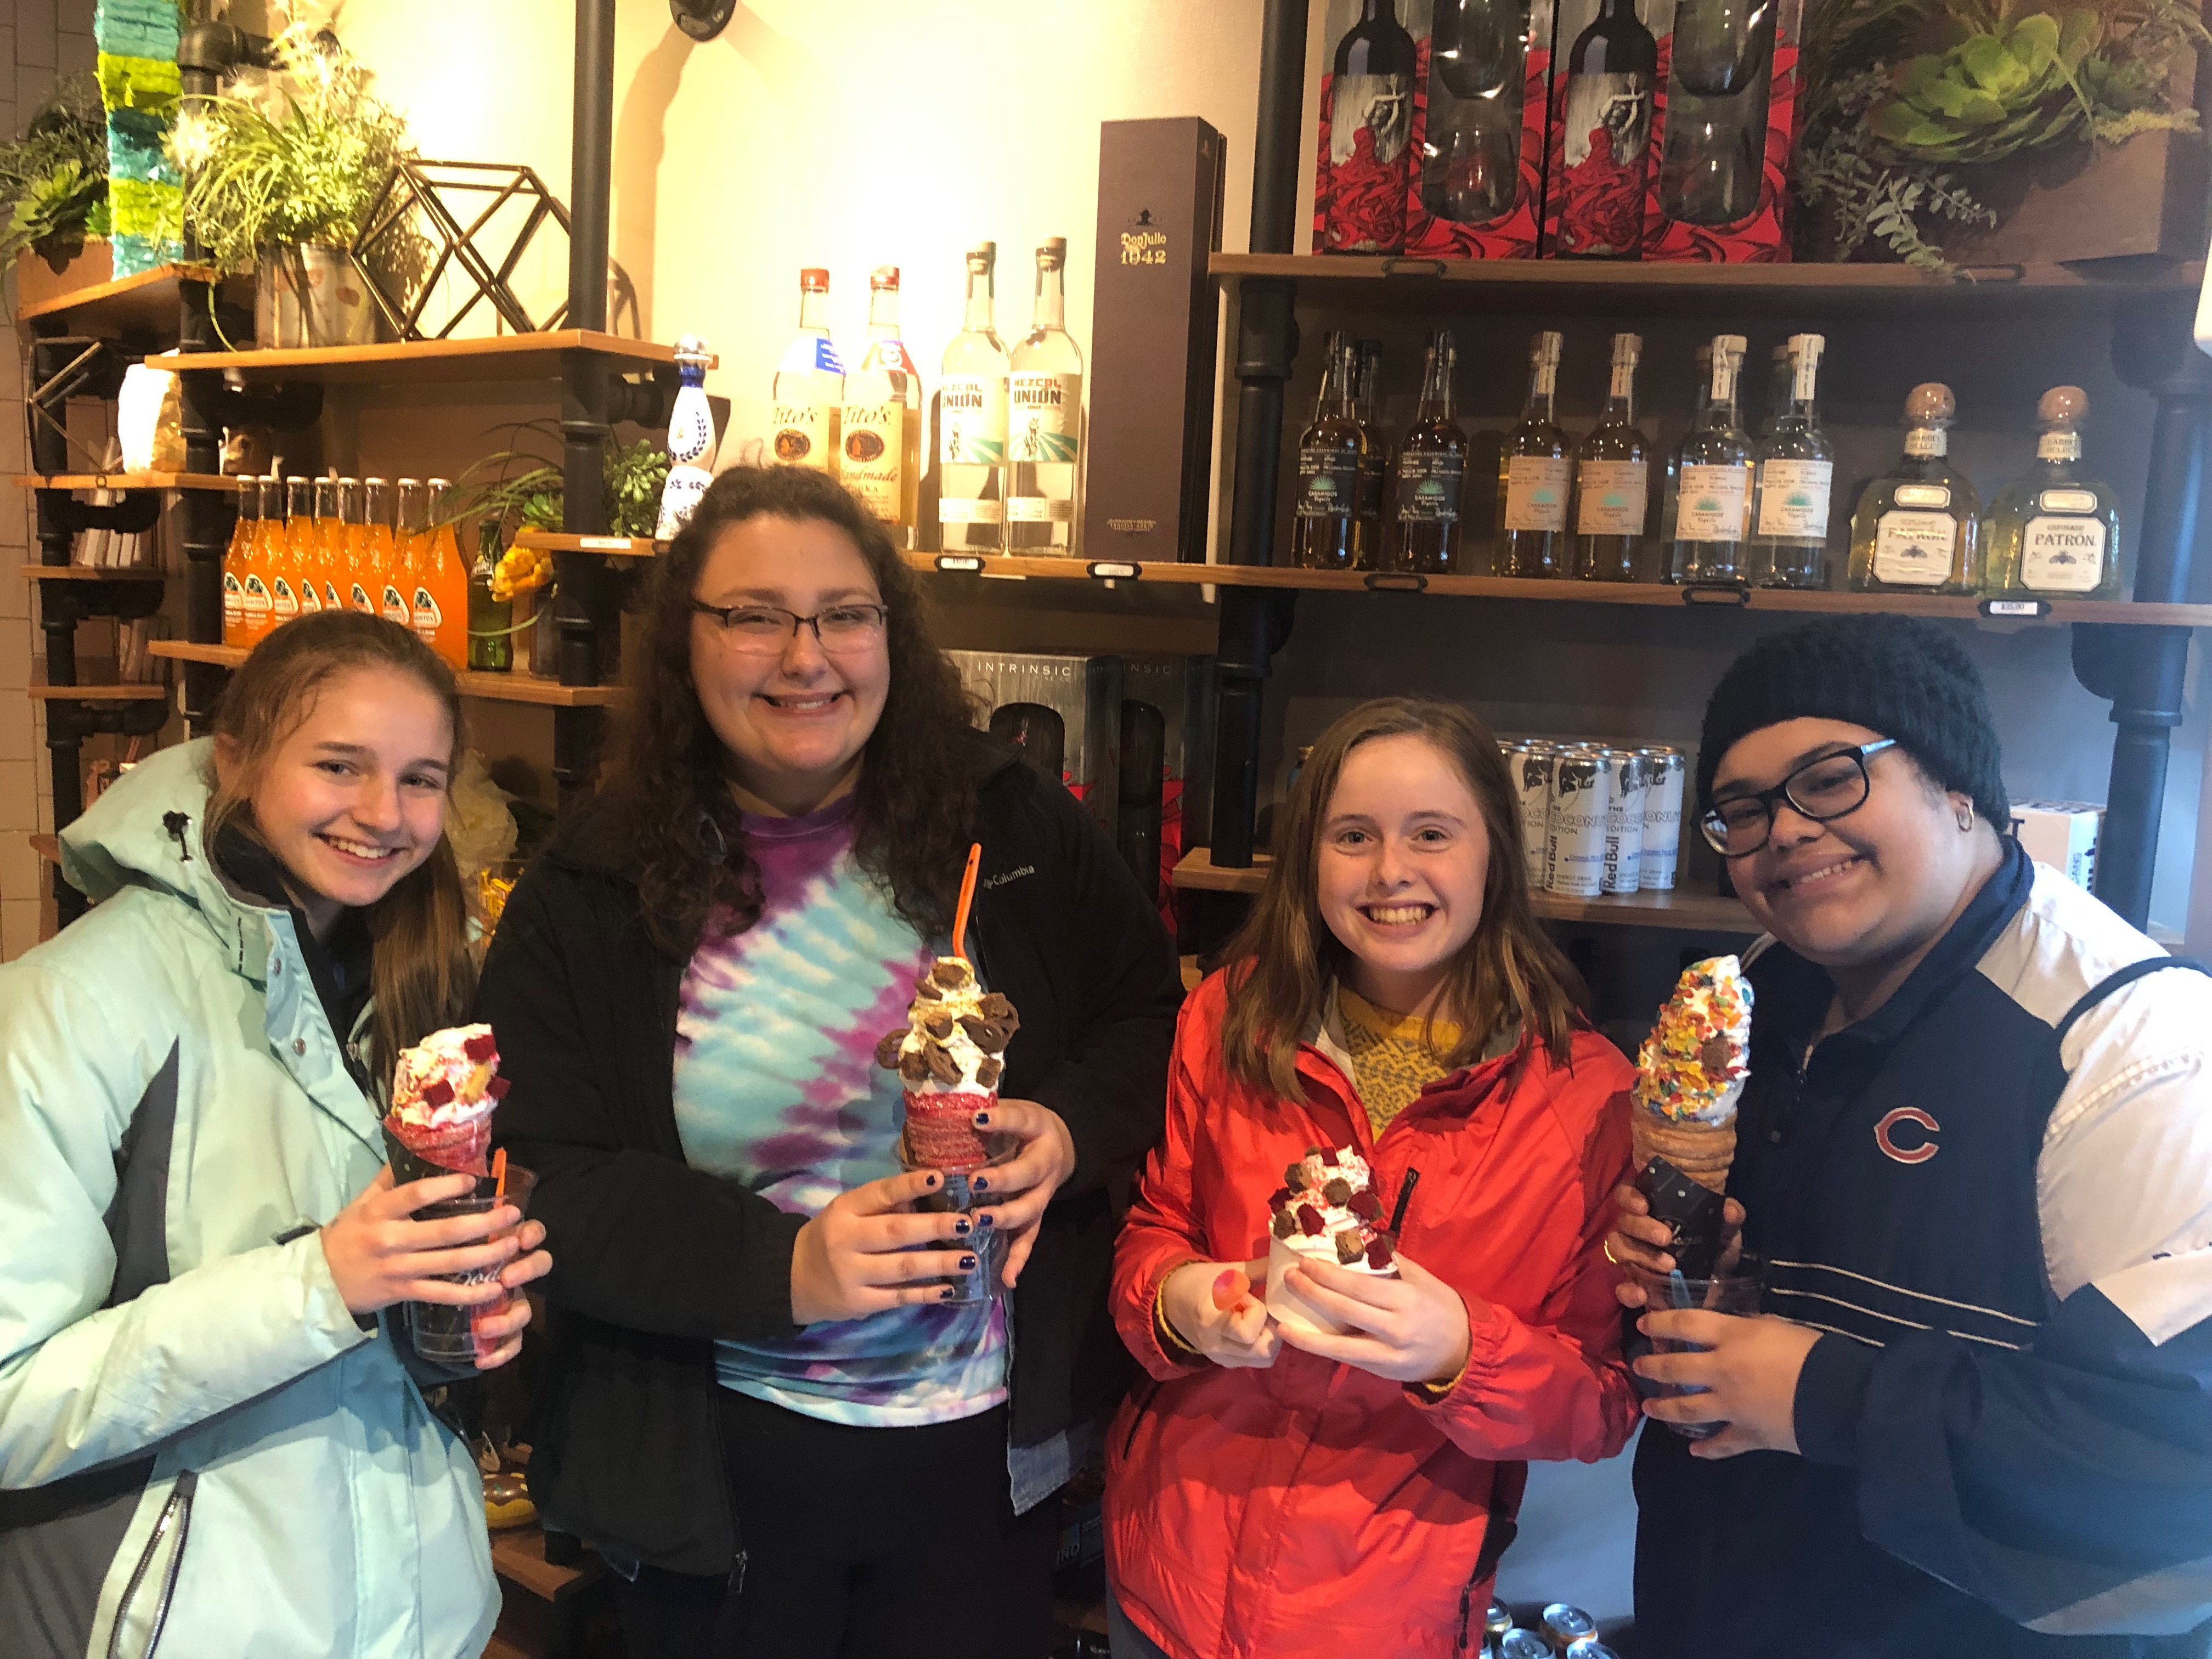 Four young women holding ice cream desserts in a small shop.